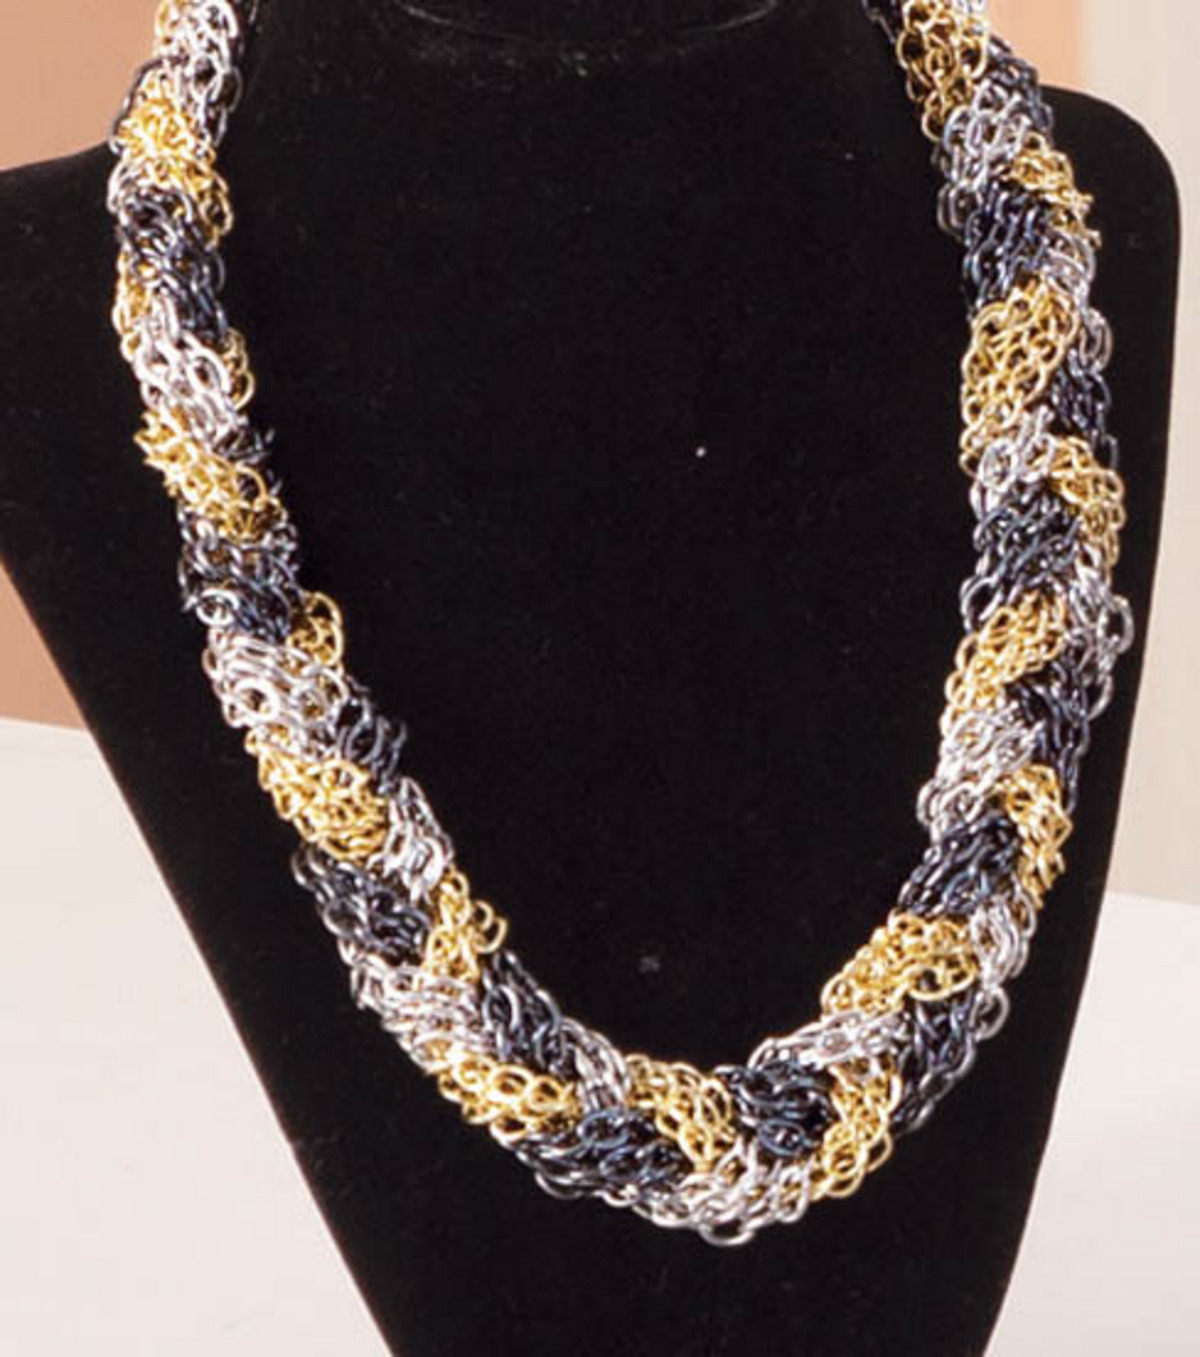 Mixed Metal Braided Chain Necklace